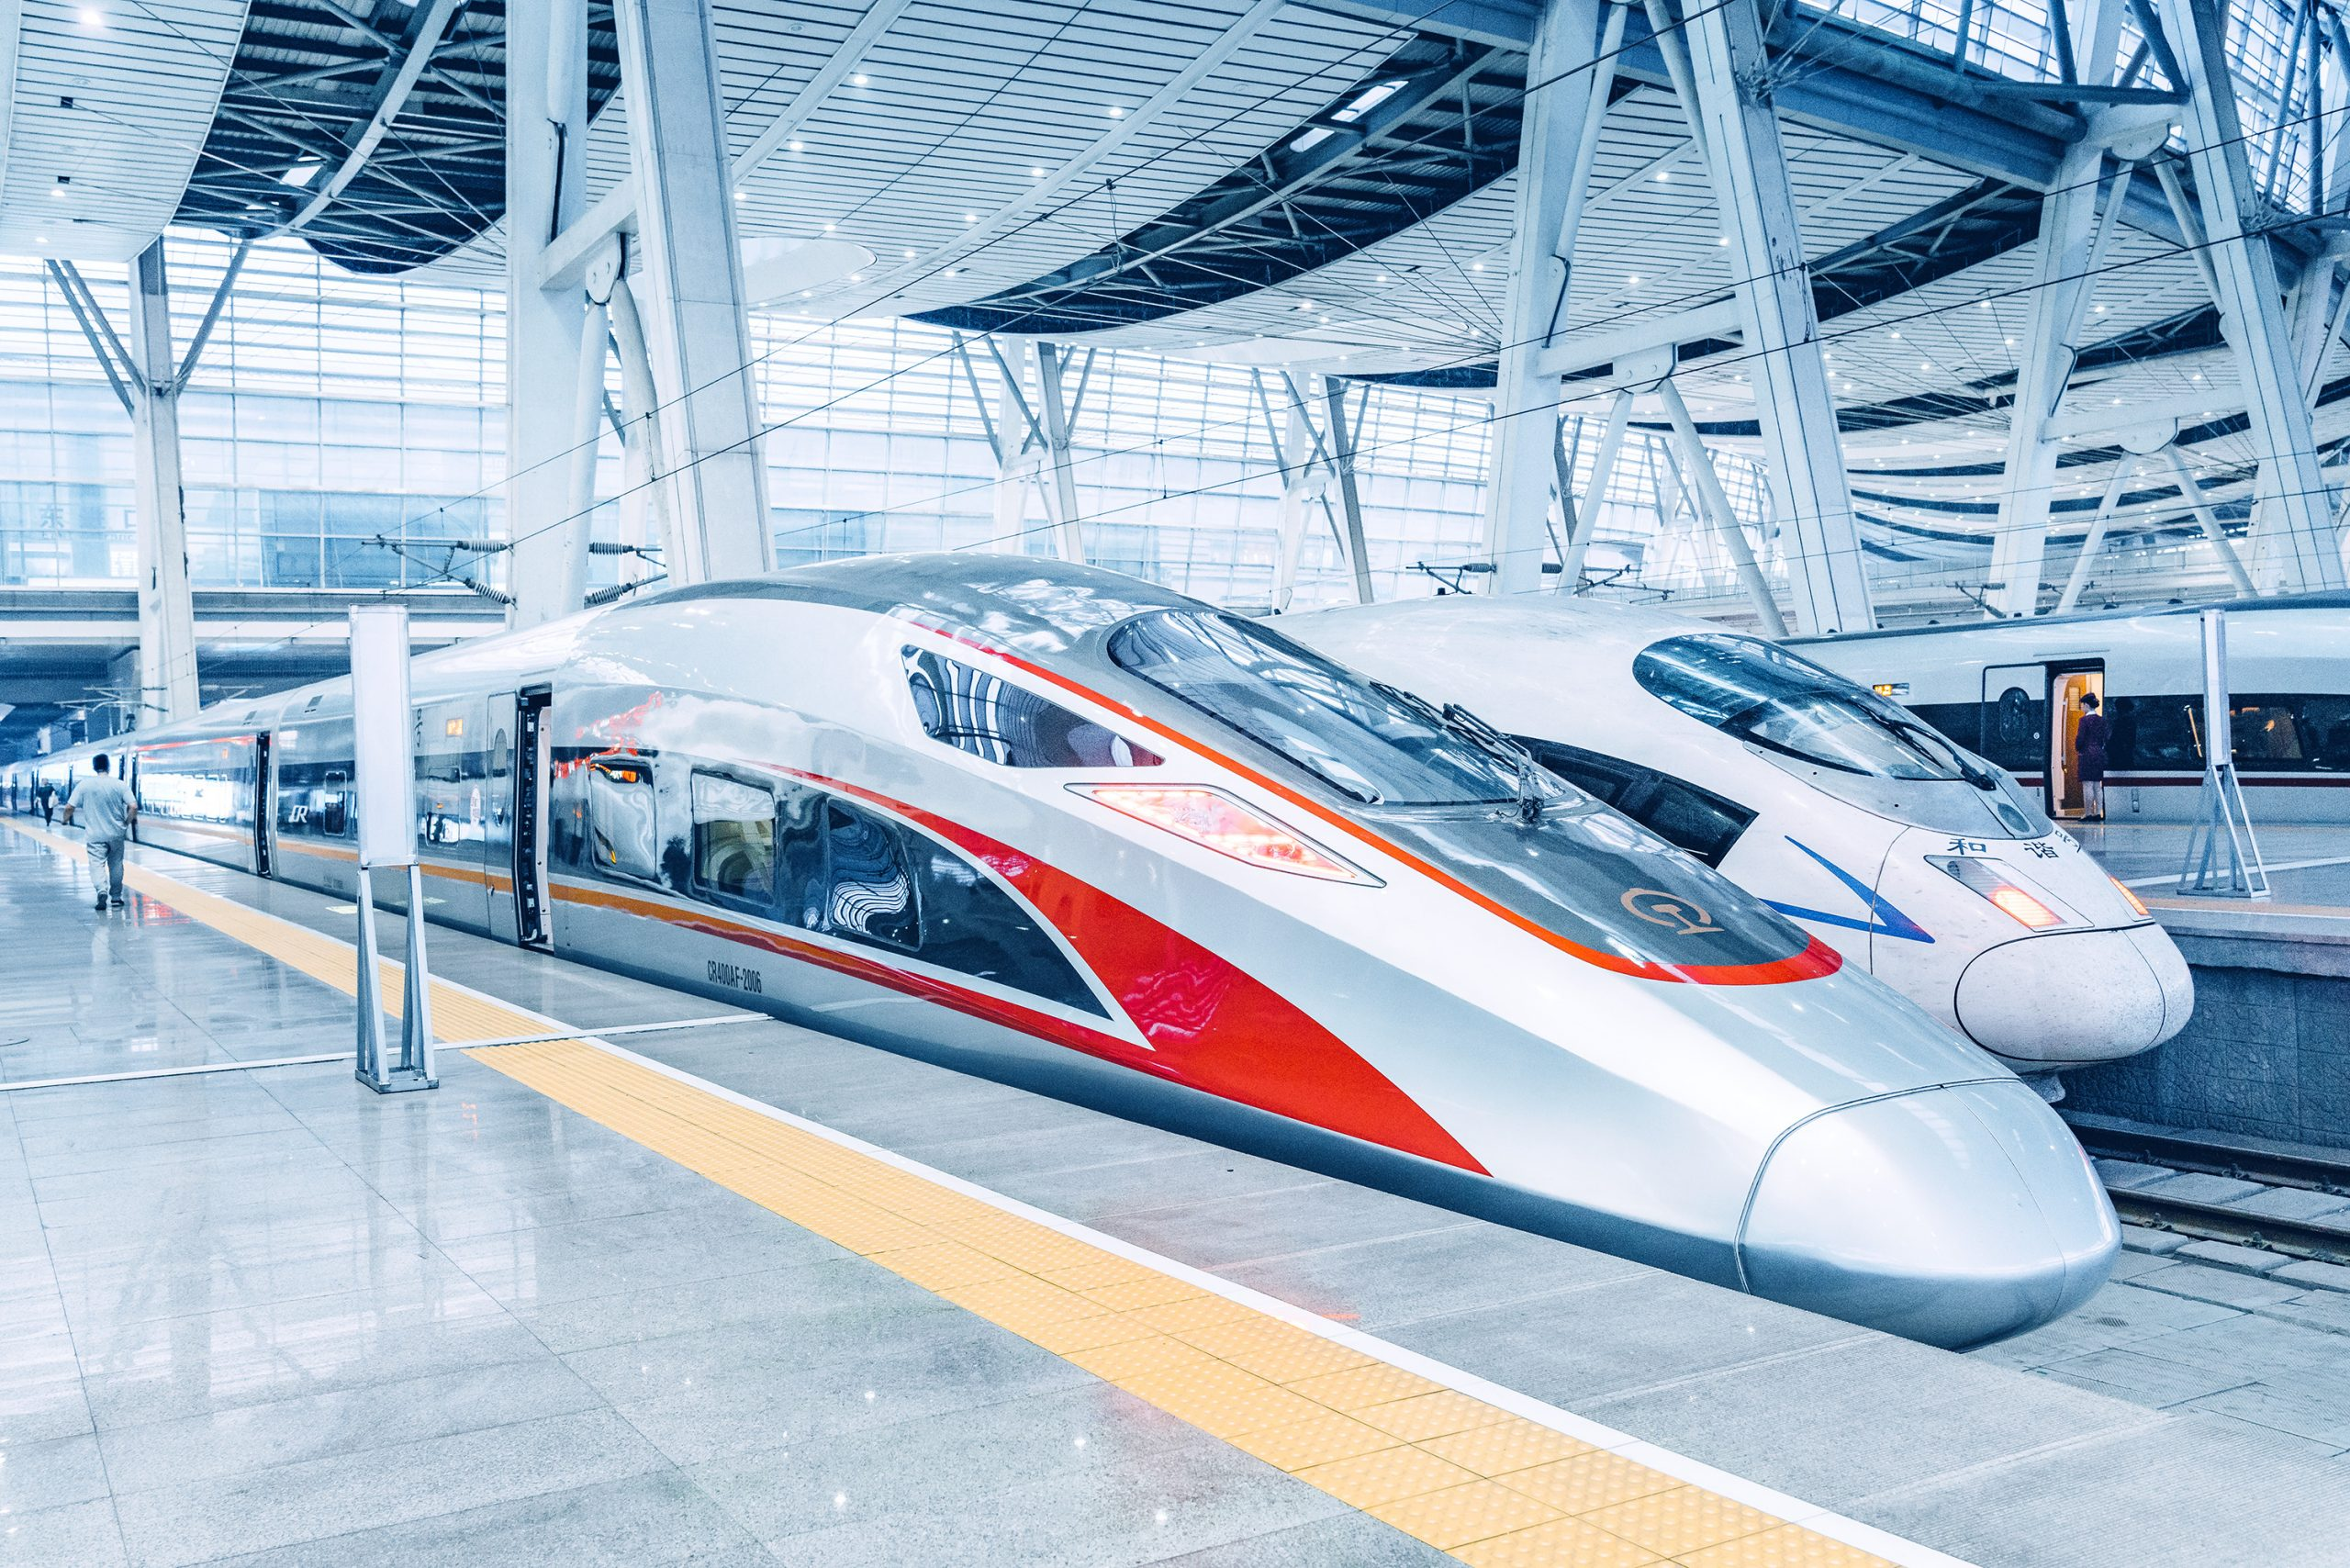 Beijing, China - April 18, 2018: View of Modern High speed Bullet trains in Beijing south train station, China